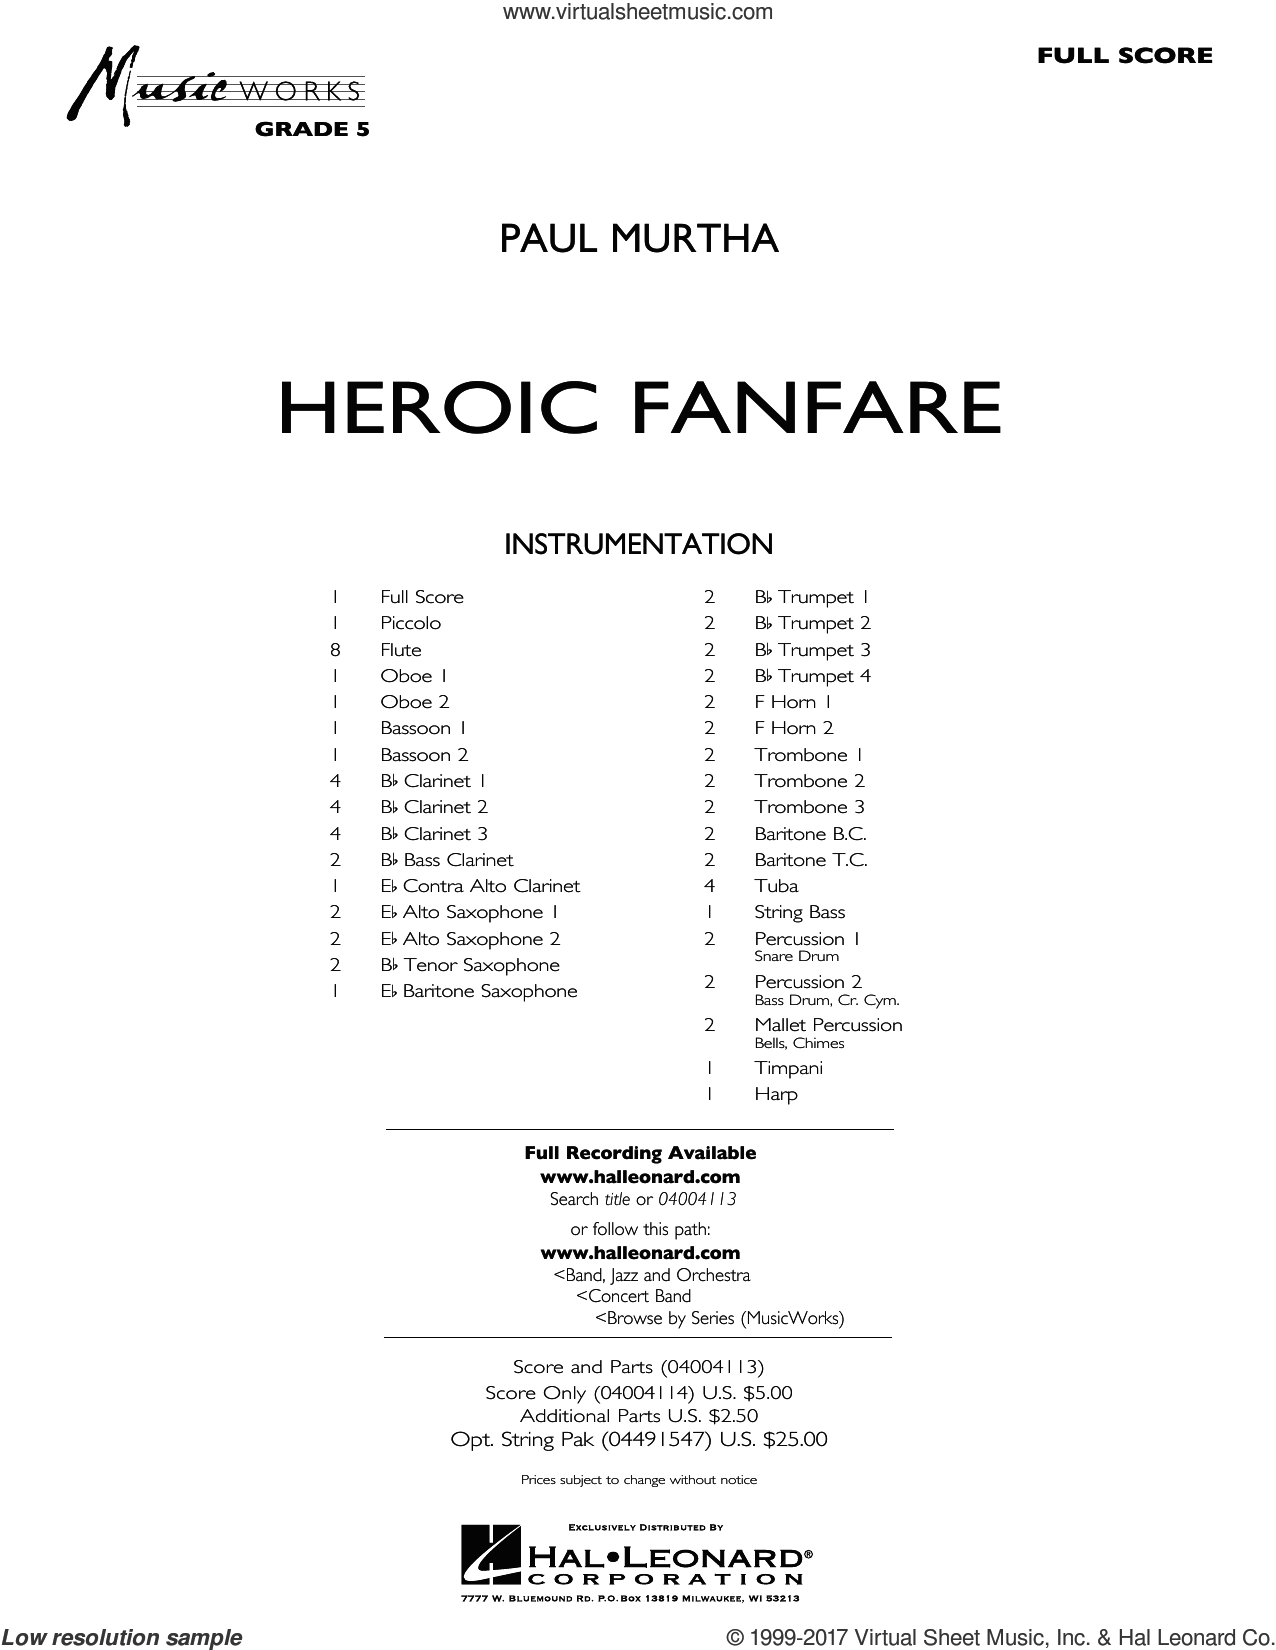 Heroic Fanfare (COMPLETE) sheet music for concert band by Paul Murtha, intermediate skill level